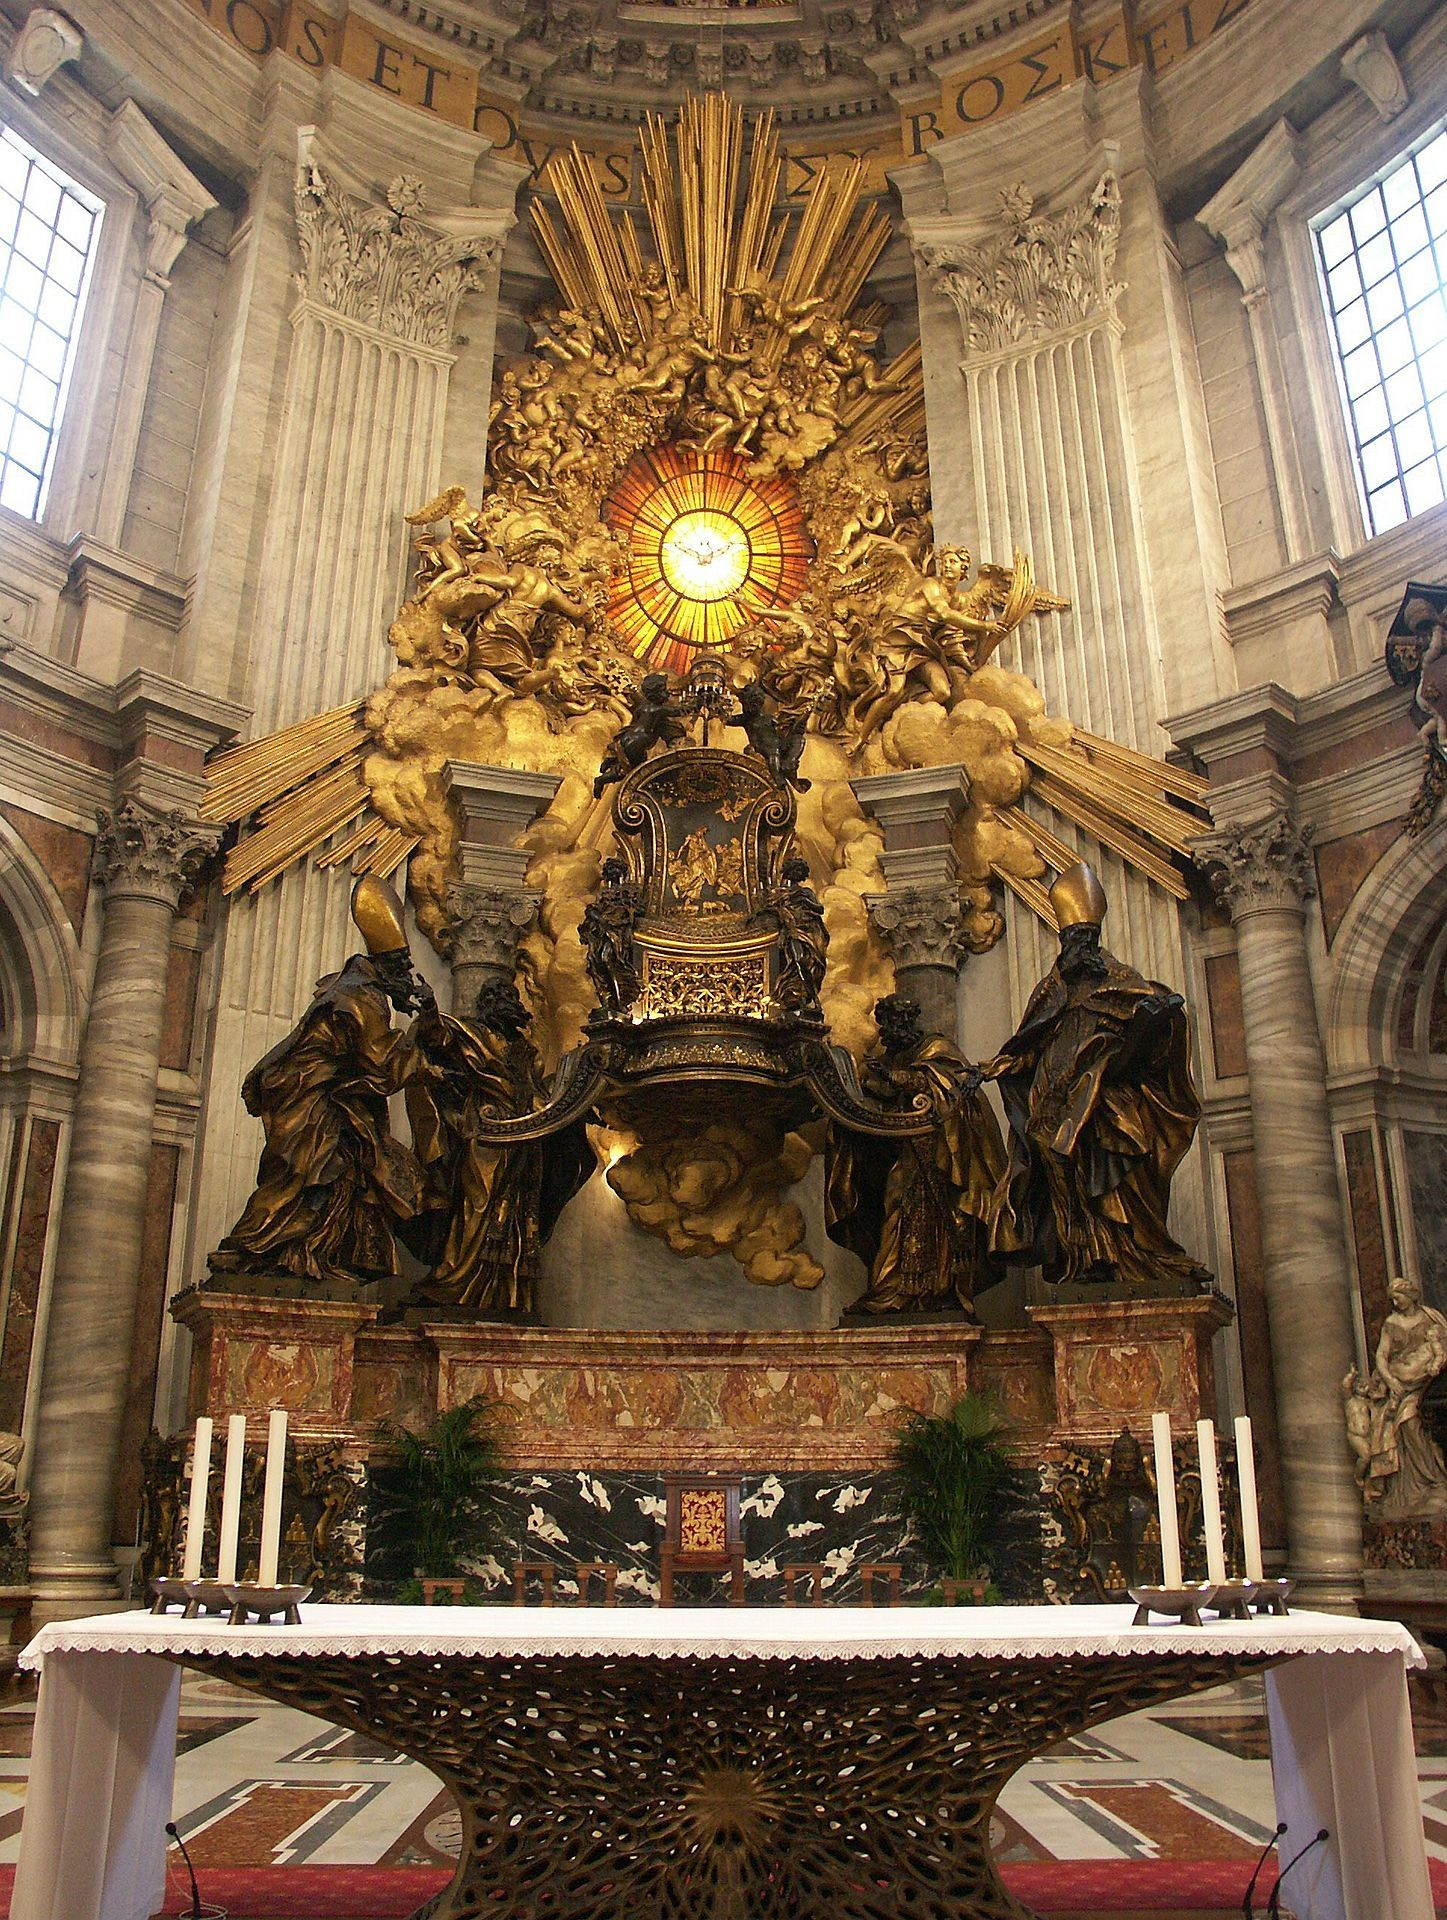 cathedra petri 1656 1666 gian lorenzo bernini baroque gian lorenzo bernini biography gian lorenzo bernini a notable architect great sculptor and prominent artist of was born on 1598 in